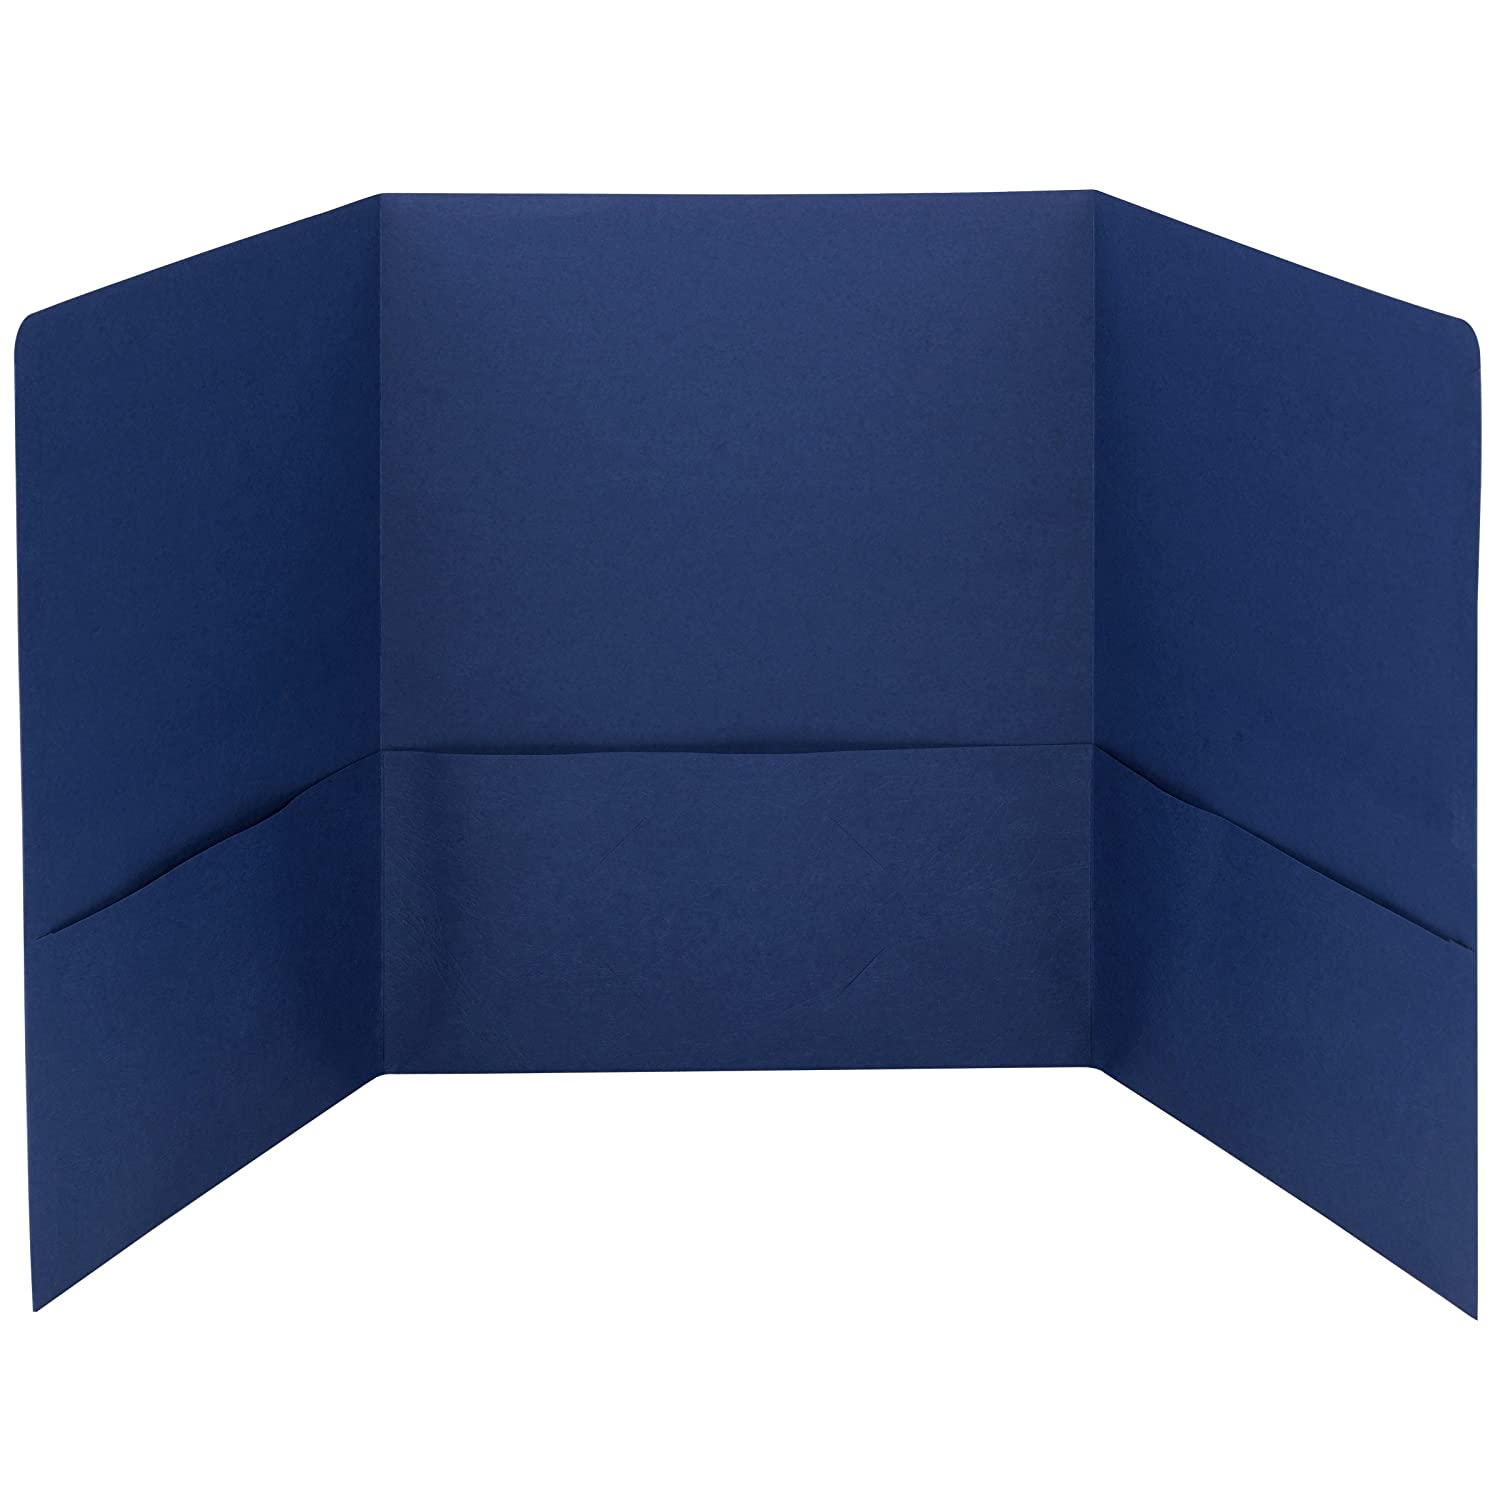 blue trifold